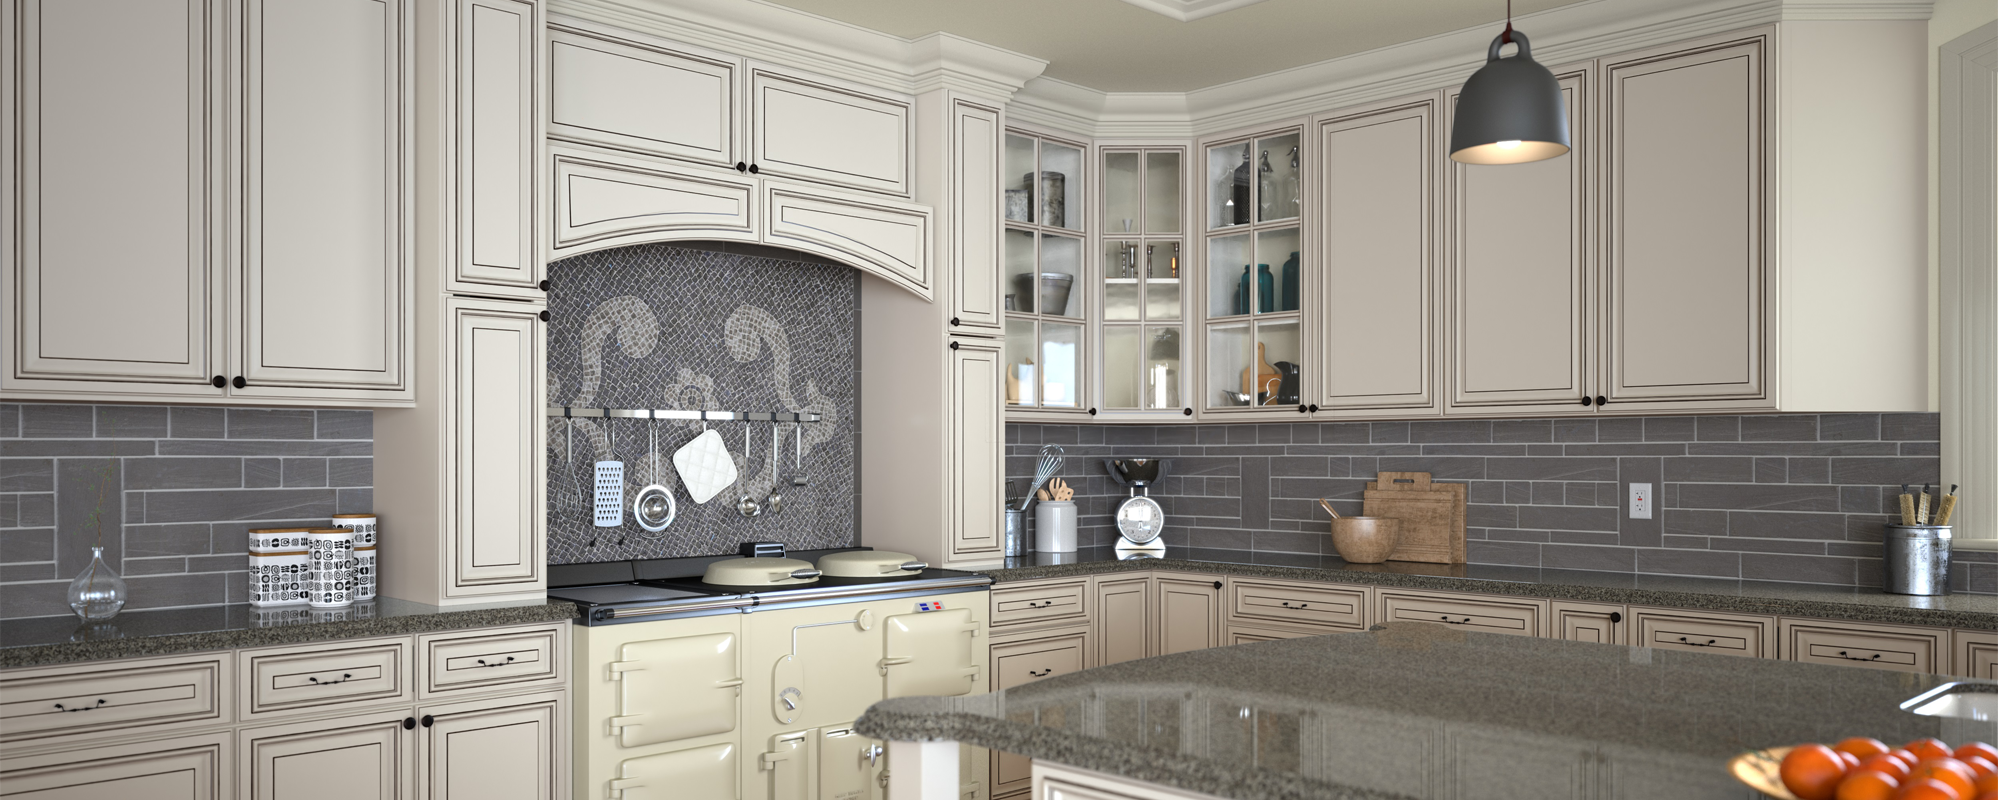 Interior Great Buy Cabinets great buy cabinets offers wholesale ready to assemble rta quality